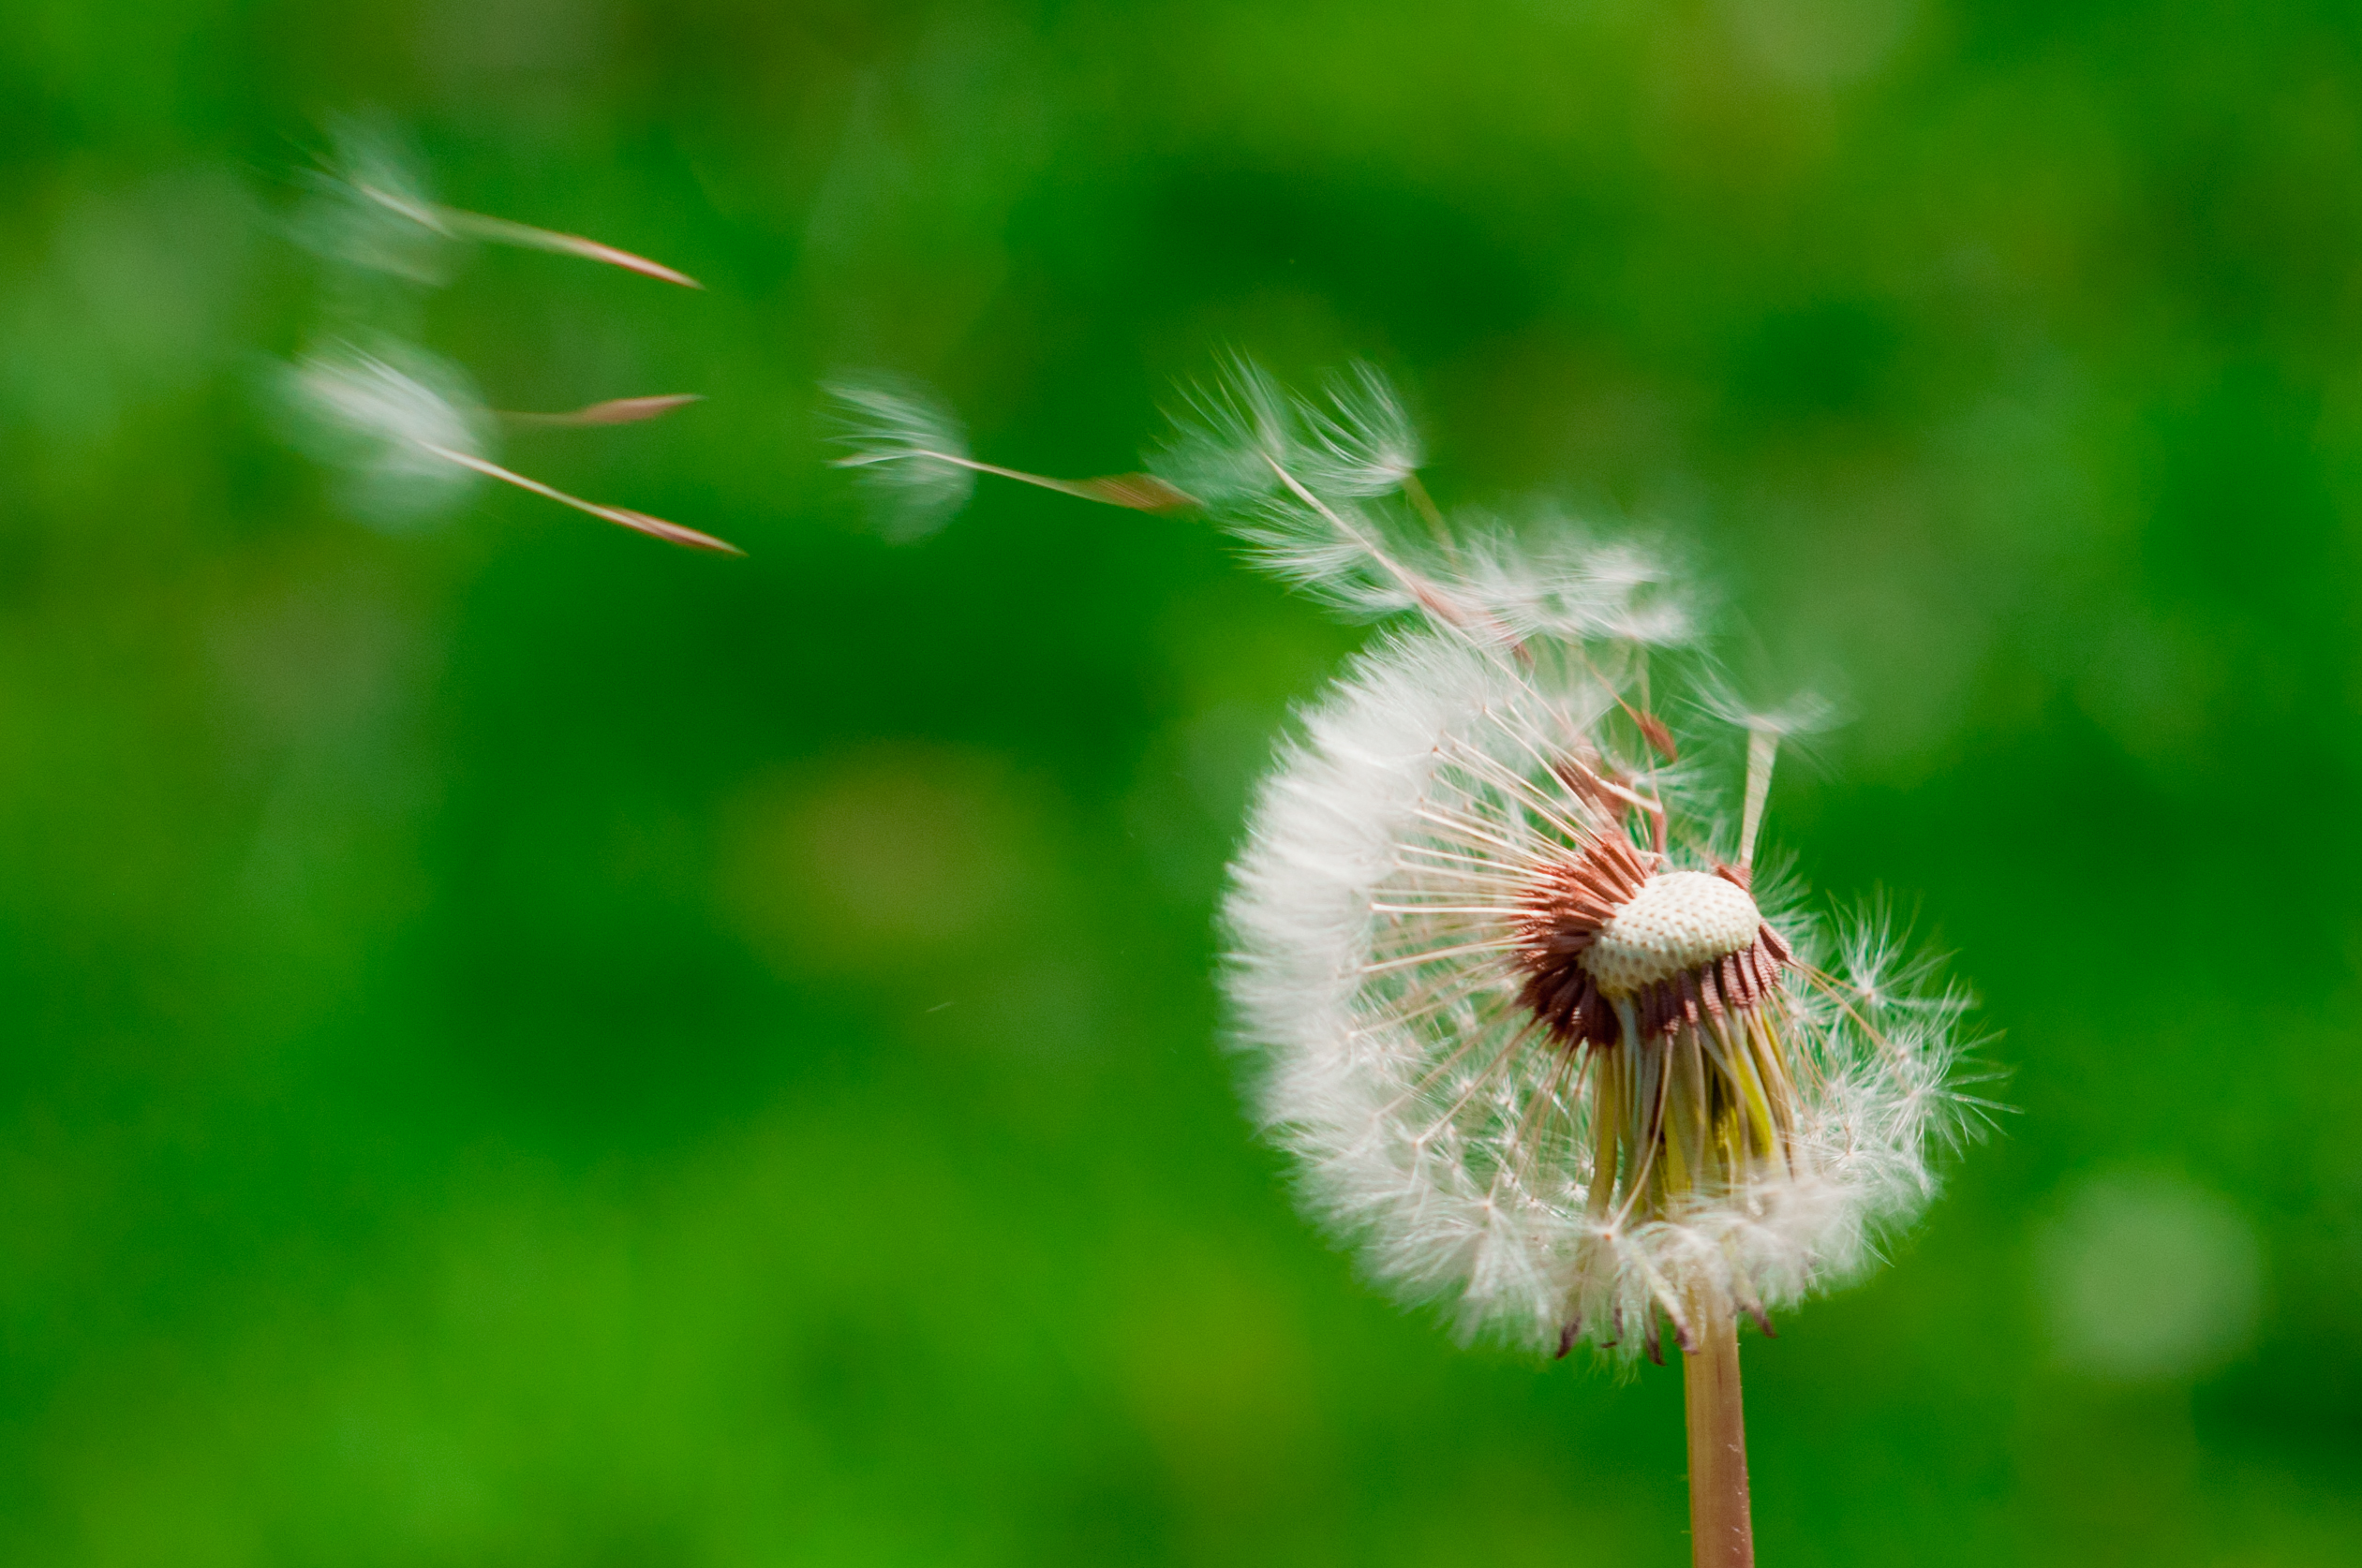 Blowing Dandelion Photography | Top Pictures Gallery Online